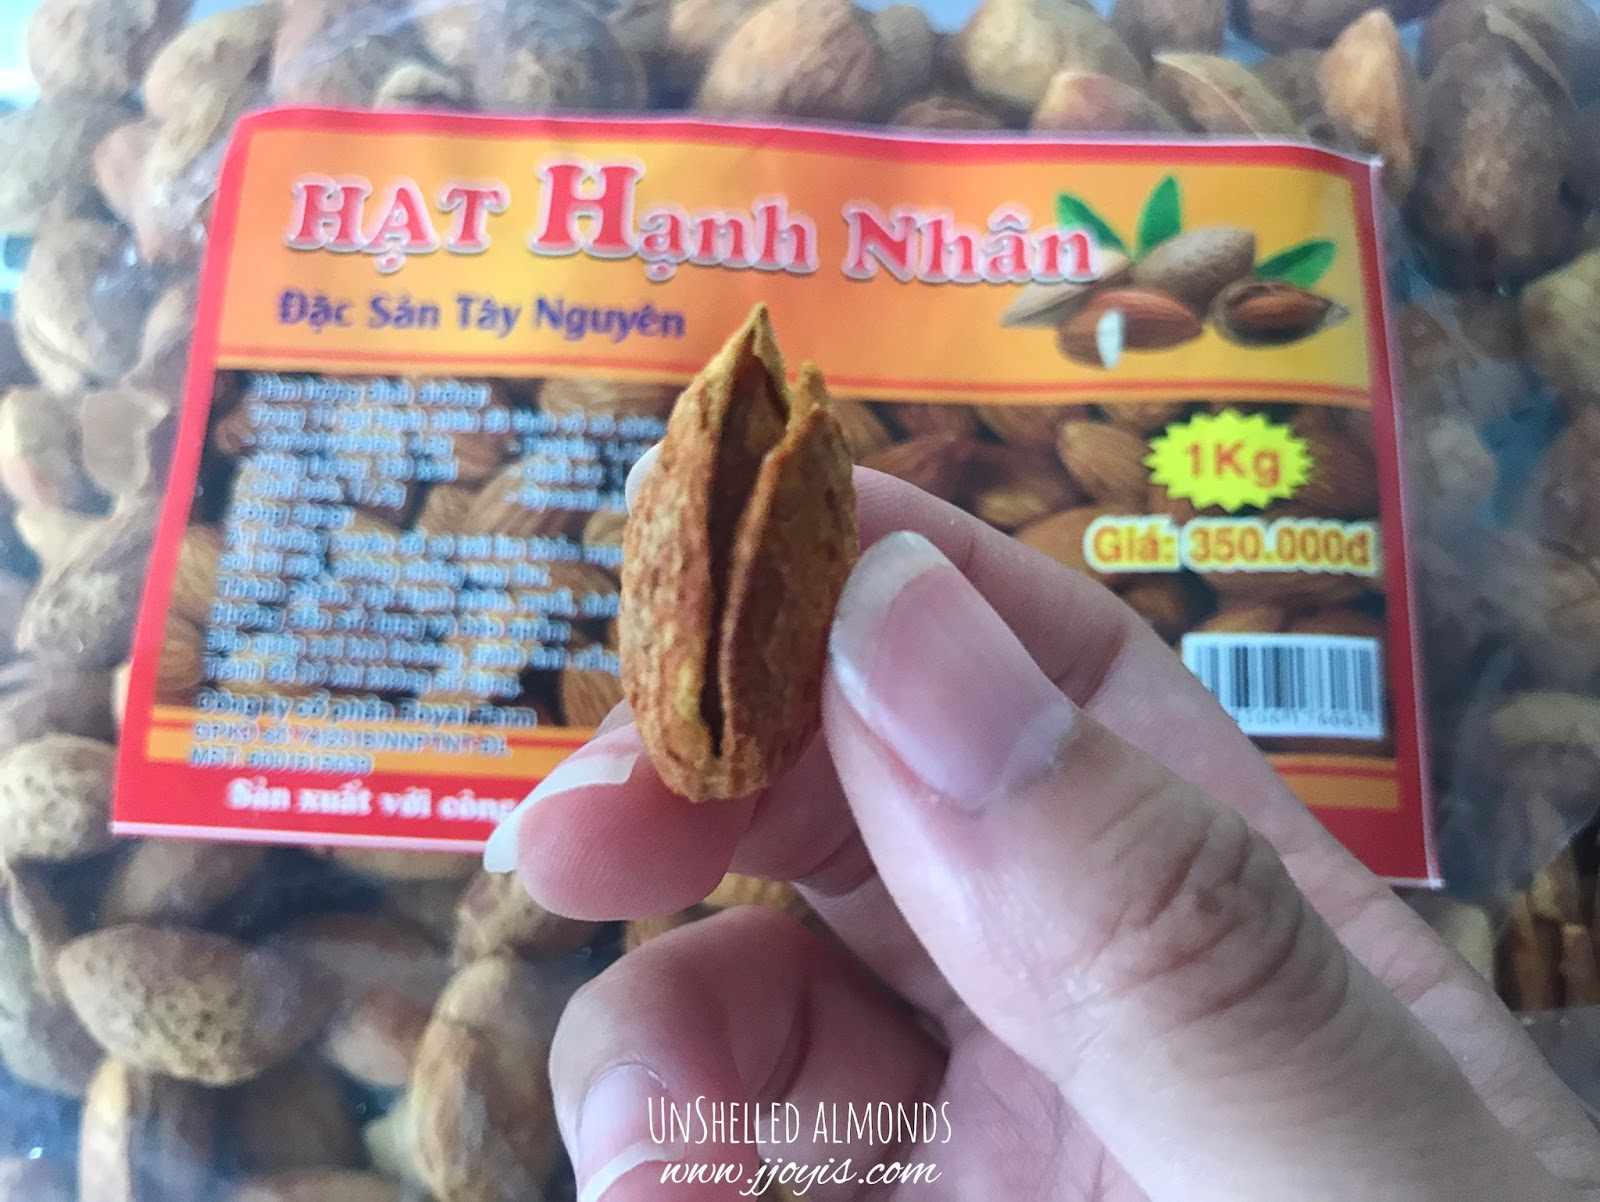 hanoi vietnam must buy shelled almond nuts dong xuan market review gift souvenir